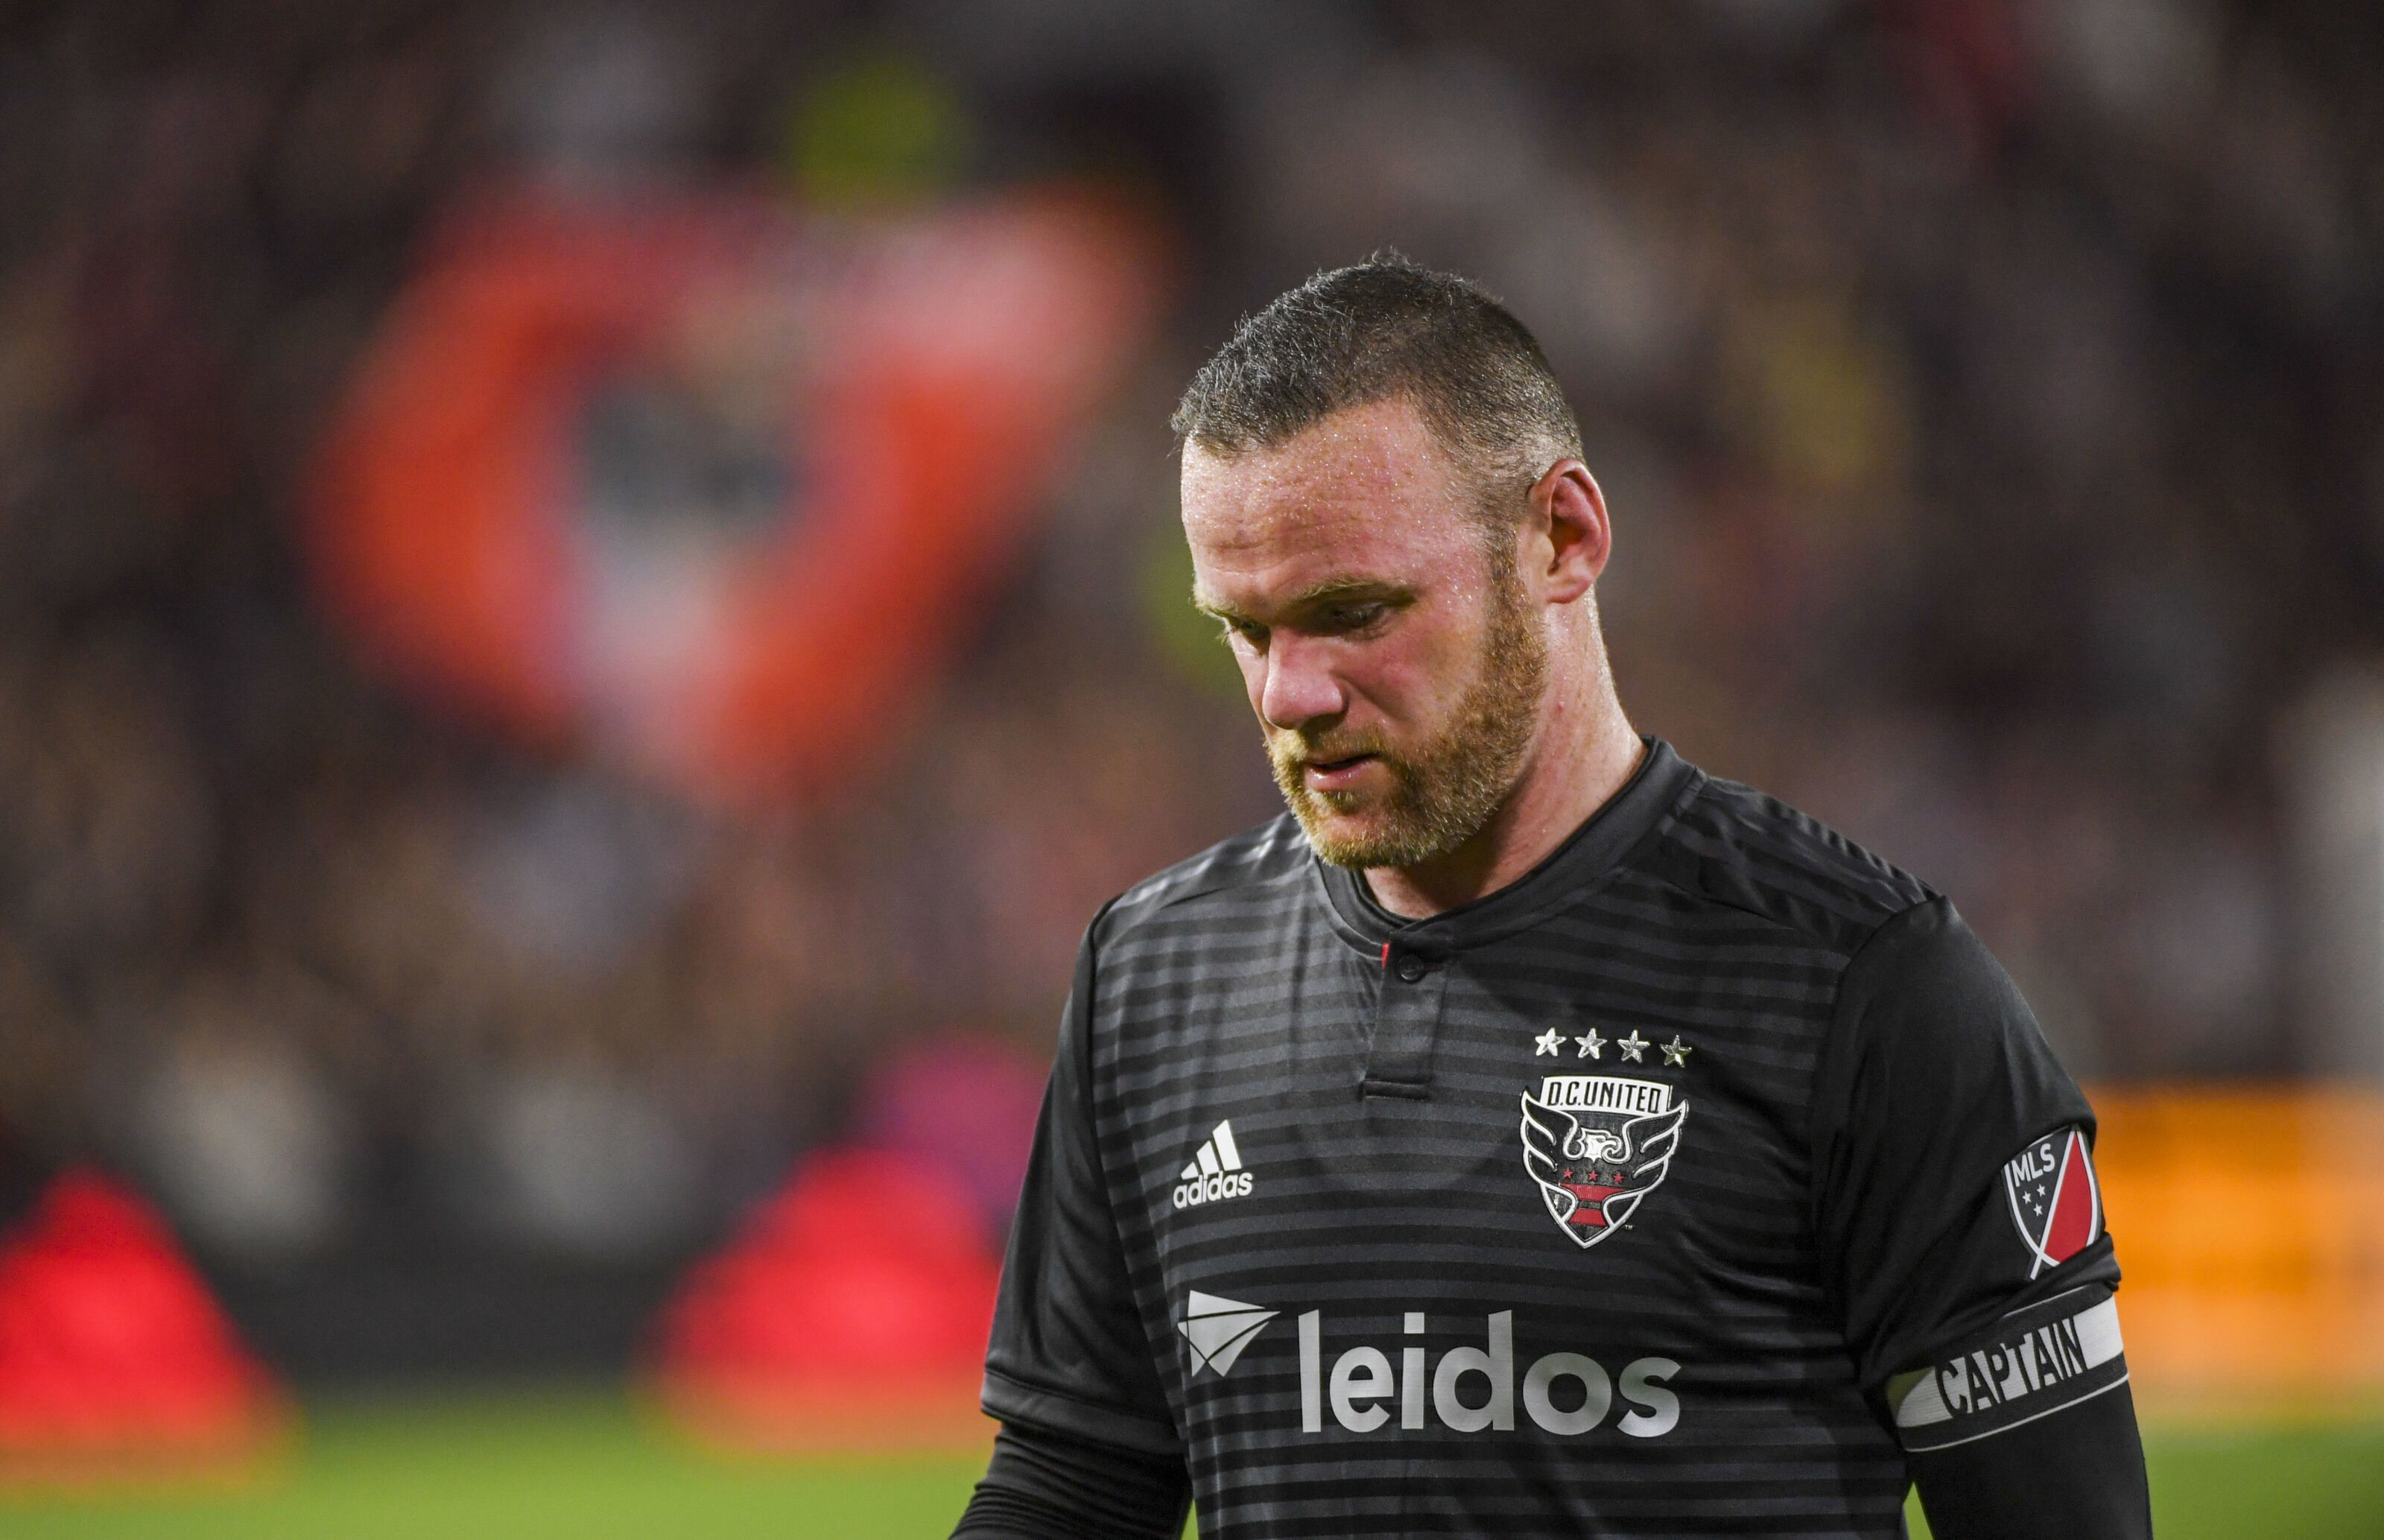 fb6a8d29 D.C. United: The Wayne Rooney departure an unmitigated disaster